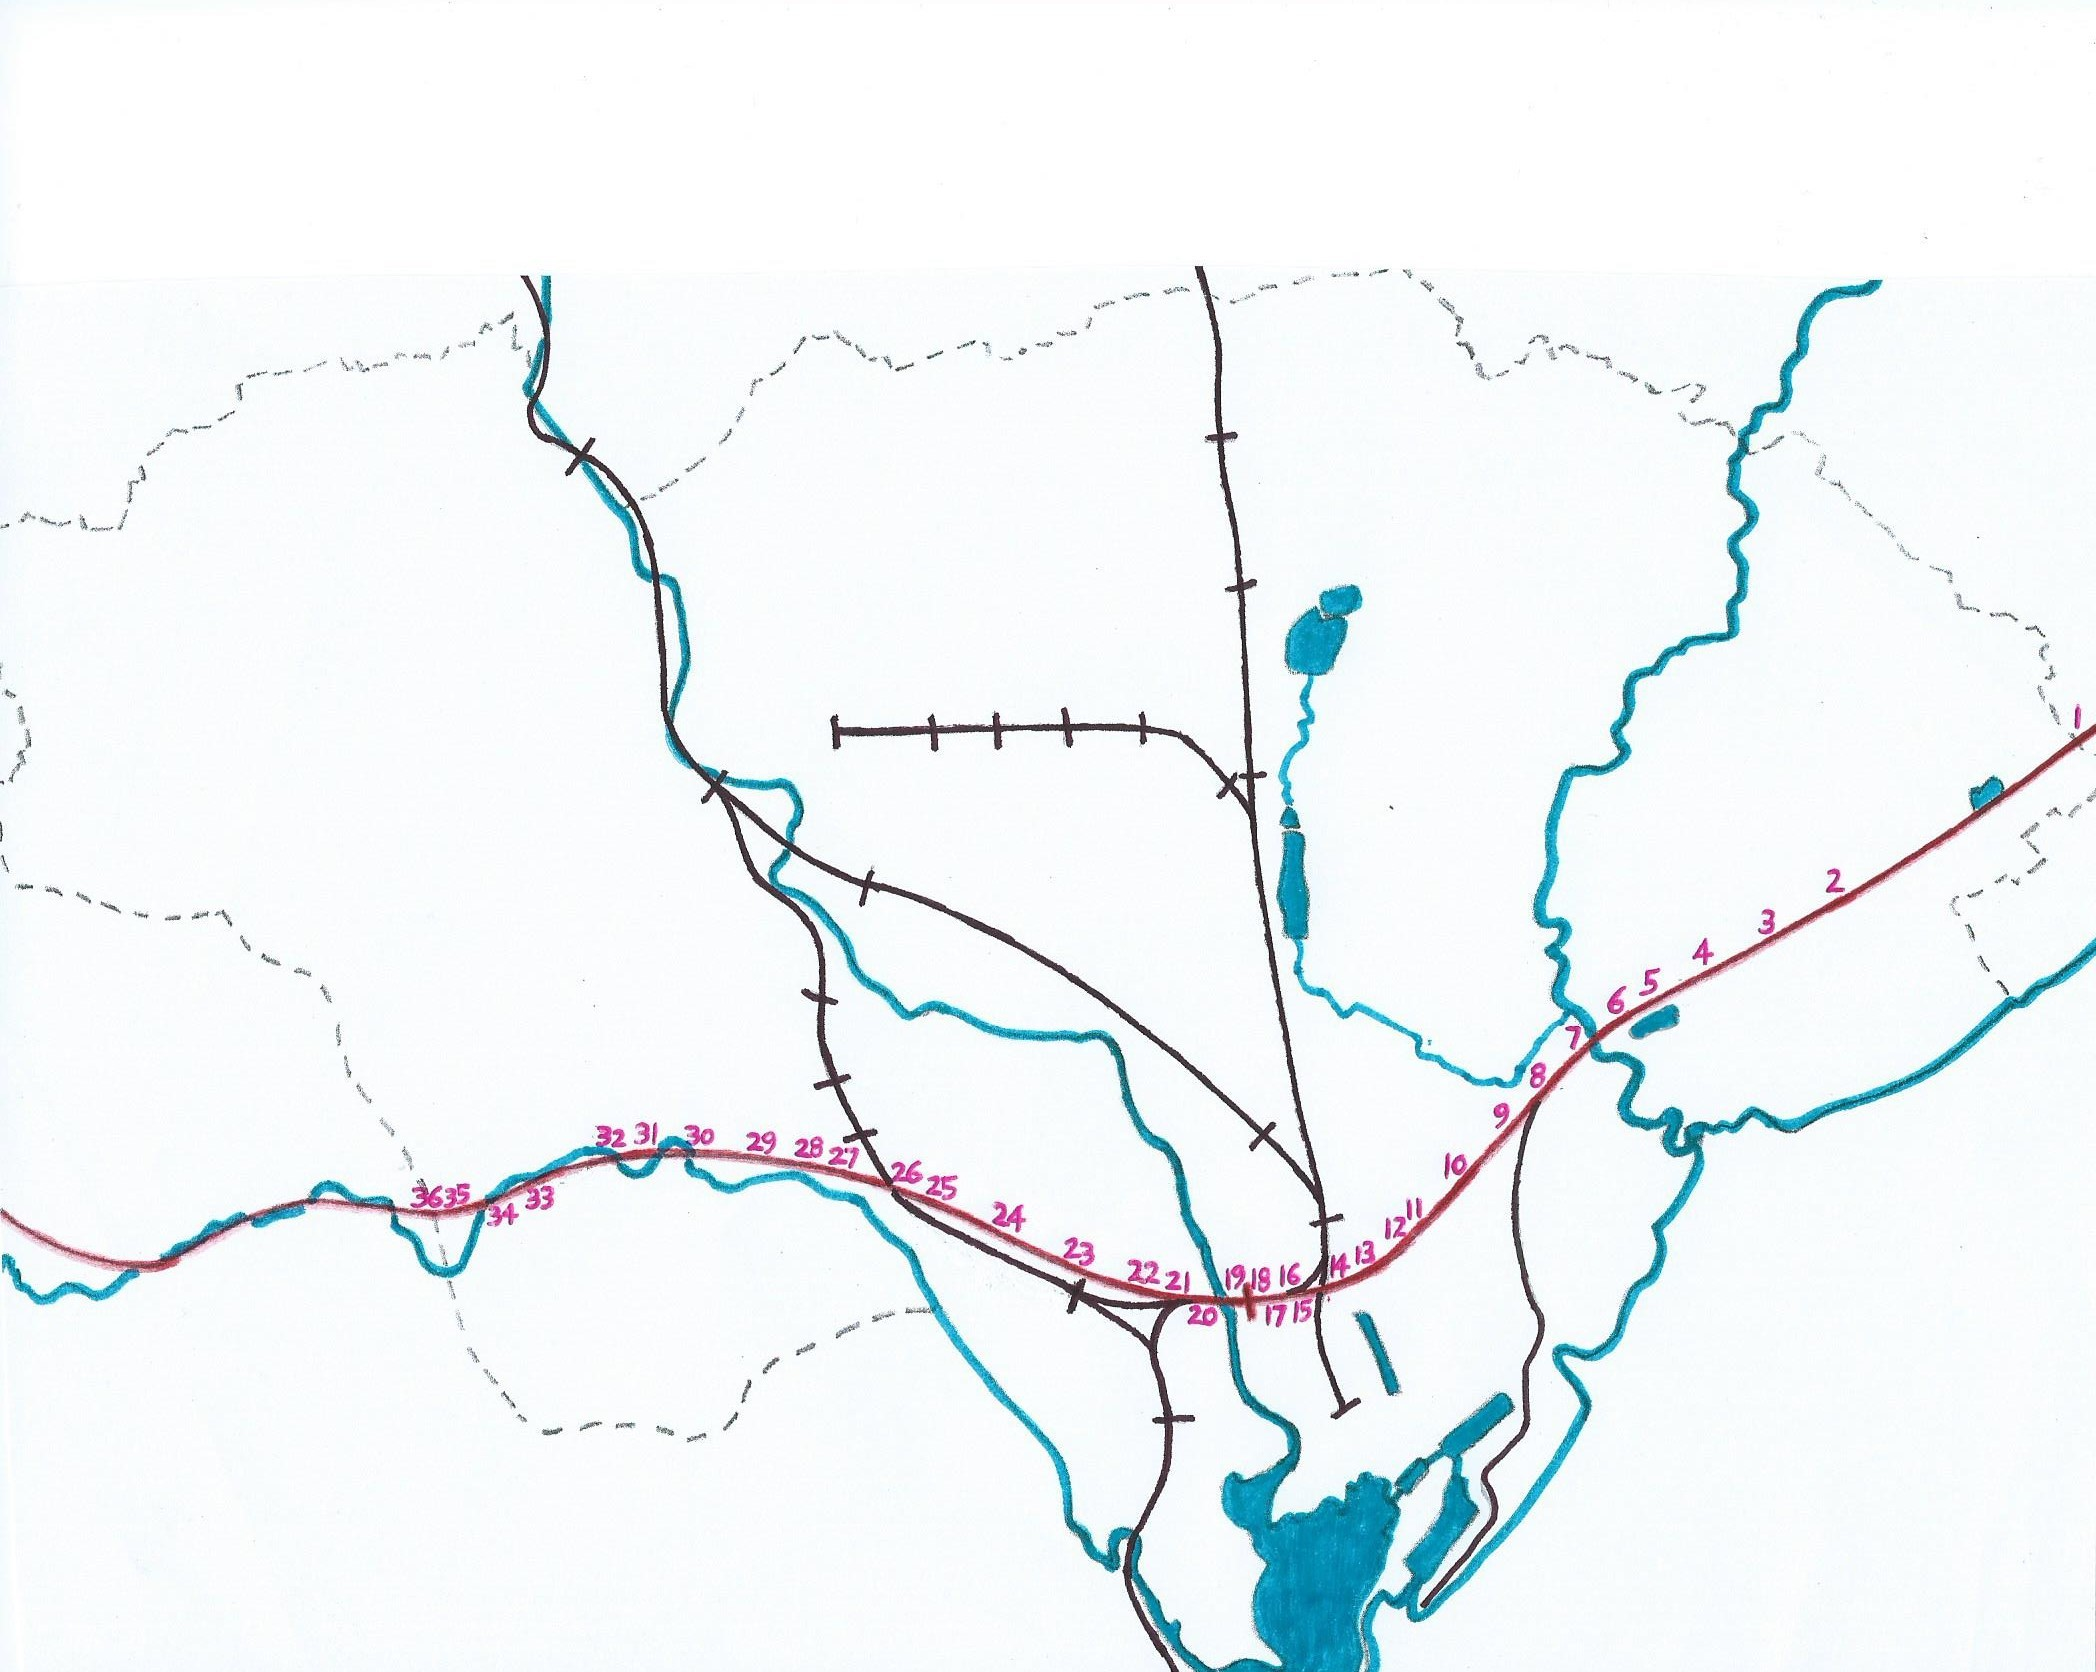 Diagram showing the 36 crossing points in cardiff other railways in black